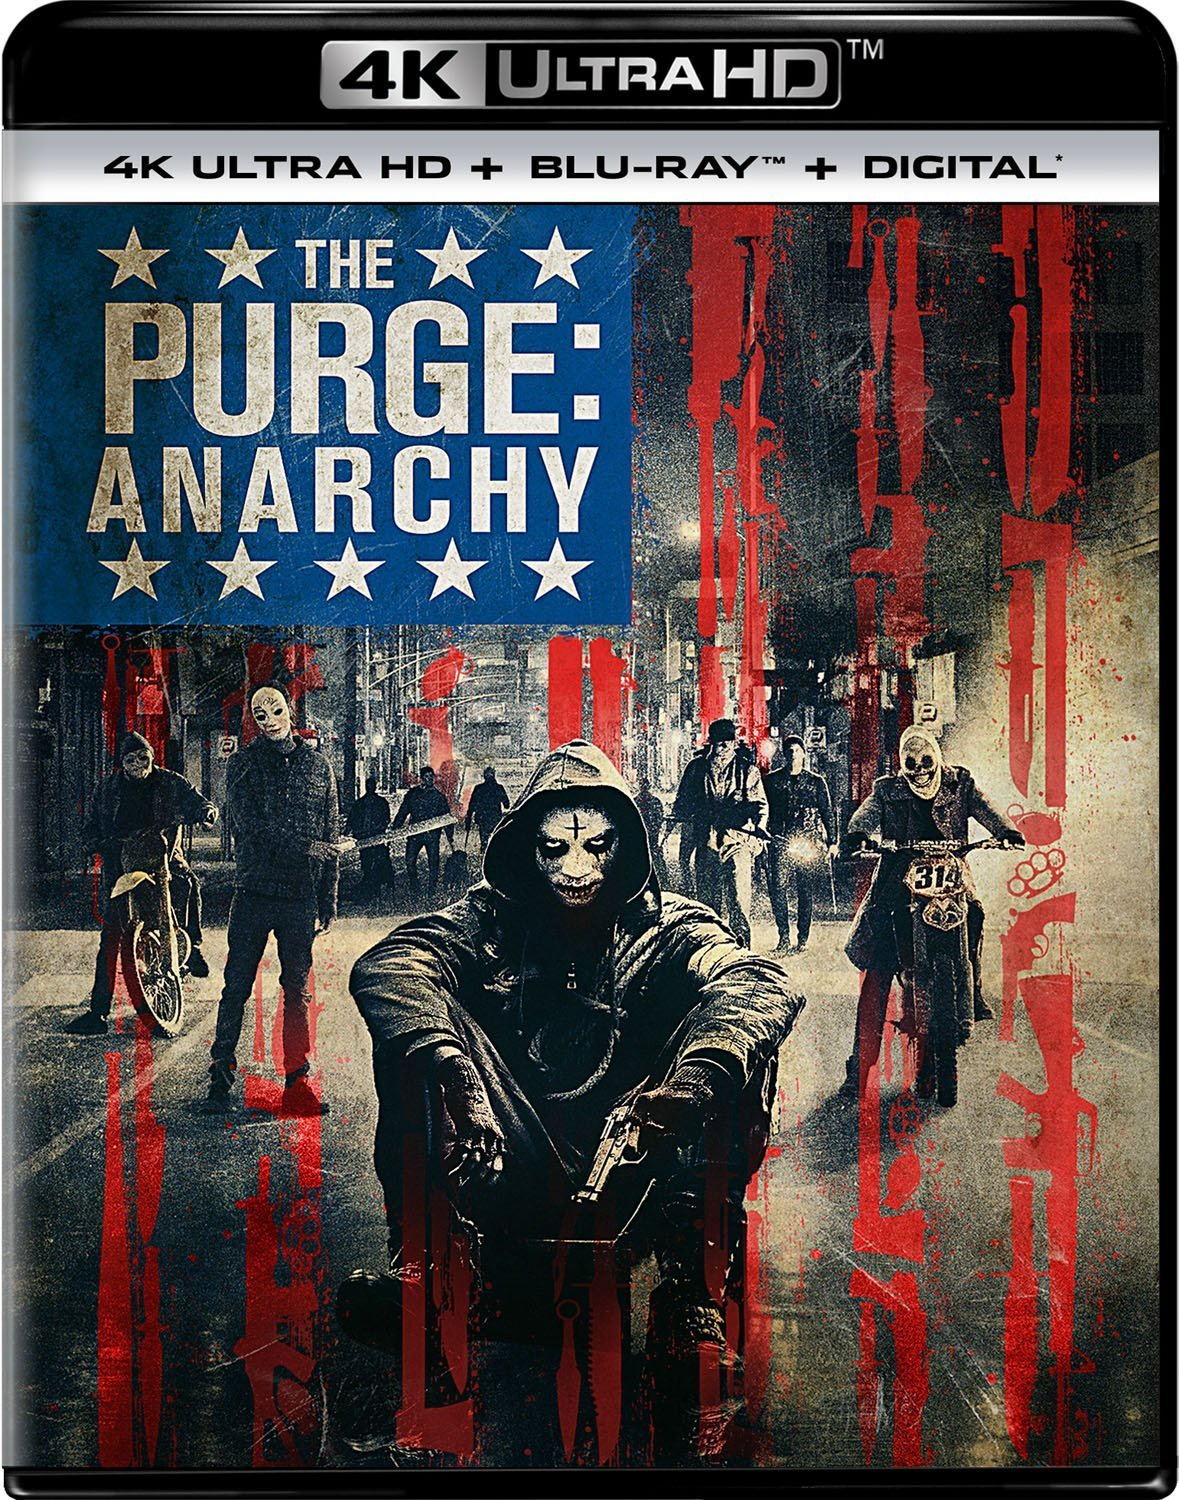 The Purge 2: Anarchy 4K (2014) Ultra HD Blu-ray